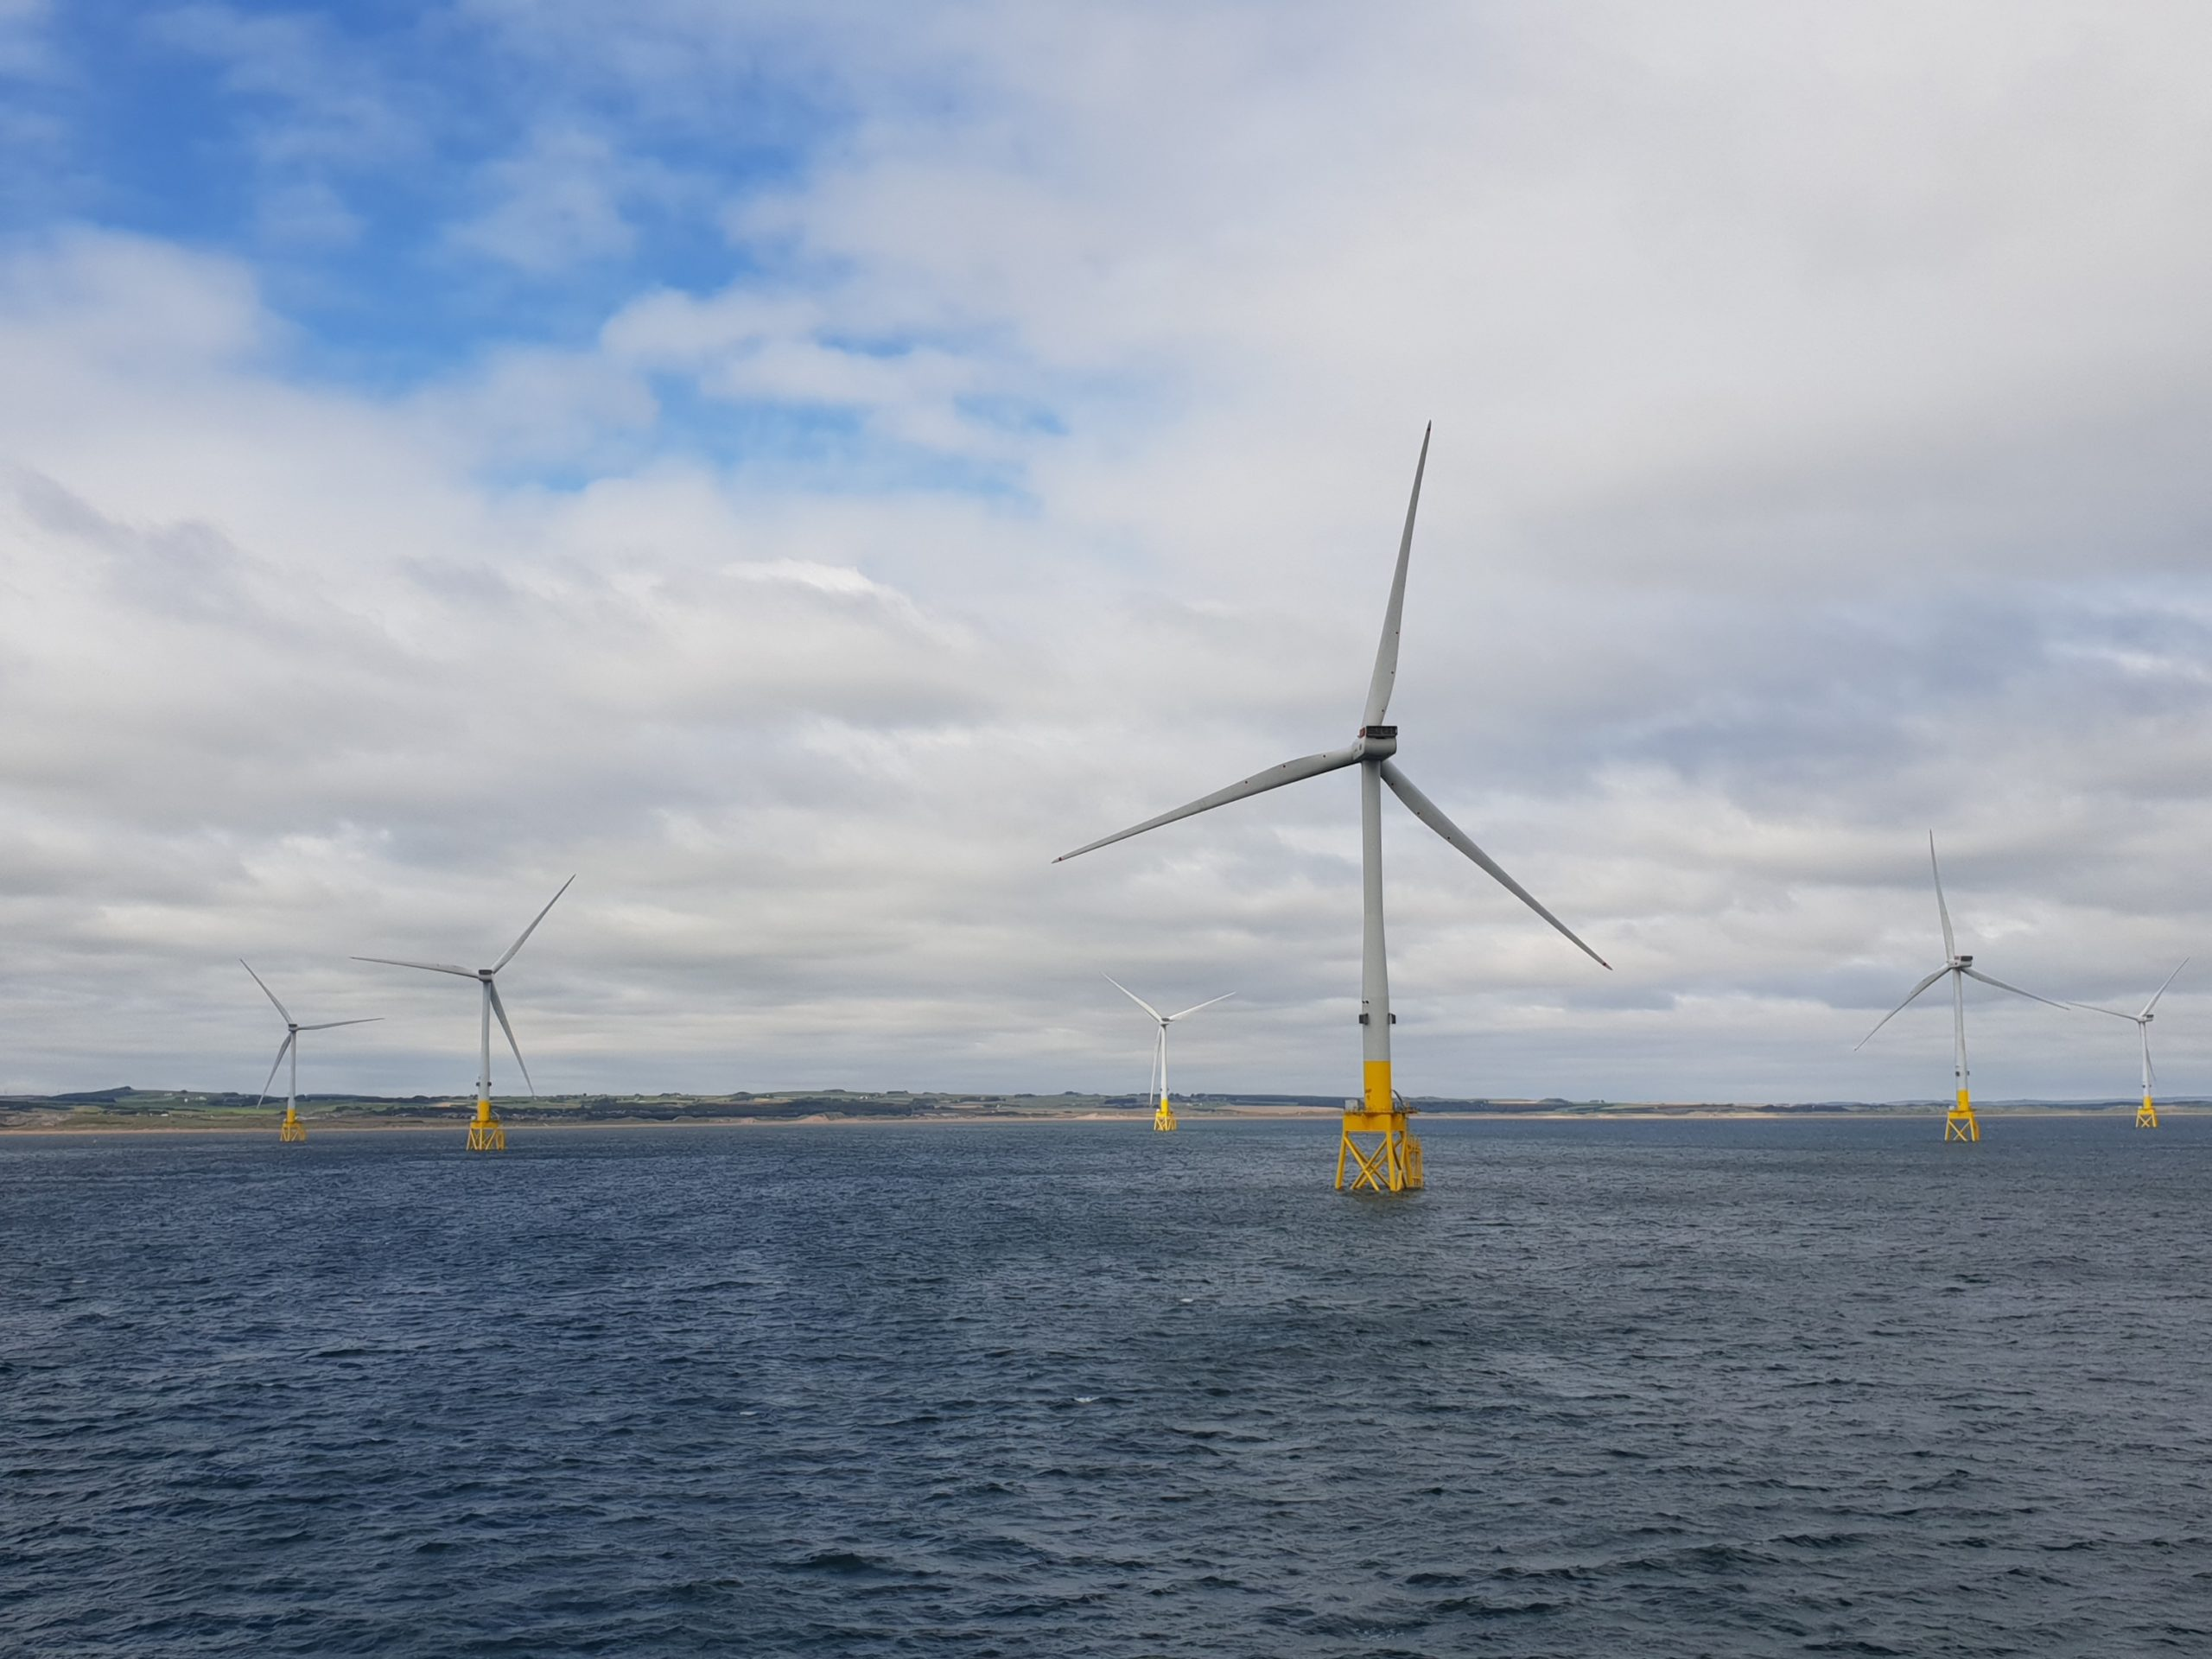 AREG Webinar – Responding to the challenges of COVID-19 in offshore renewables